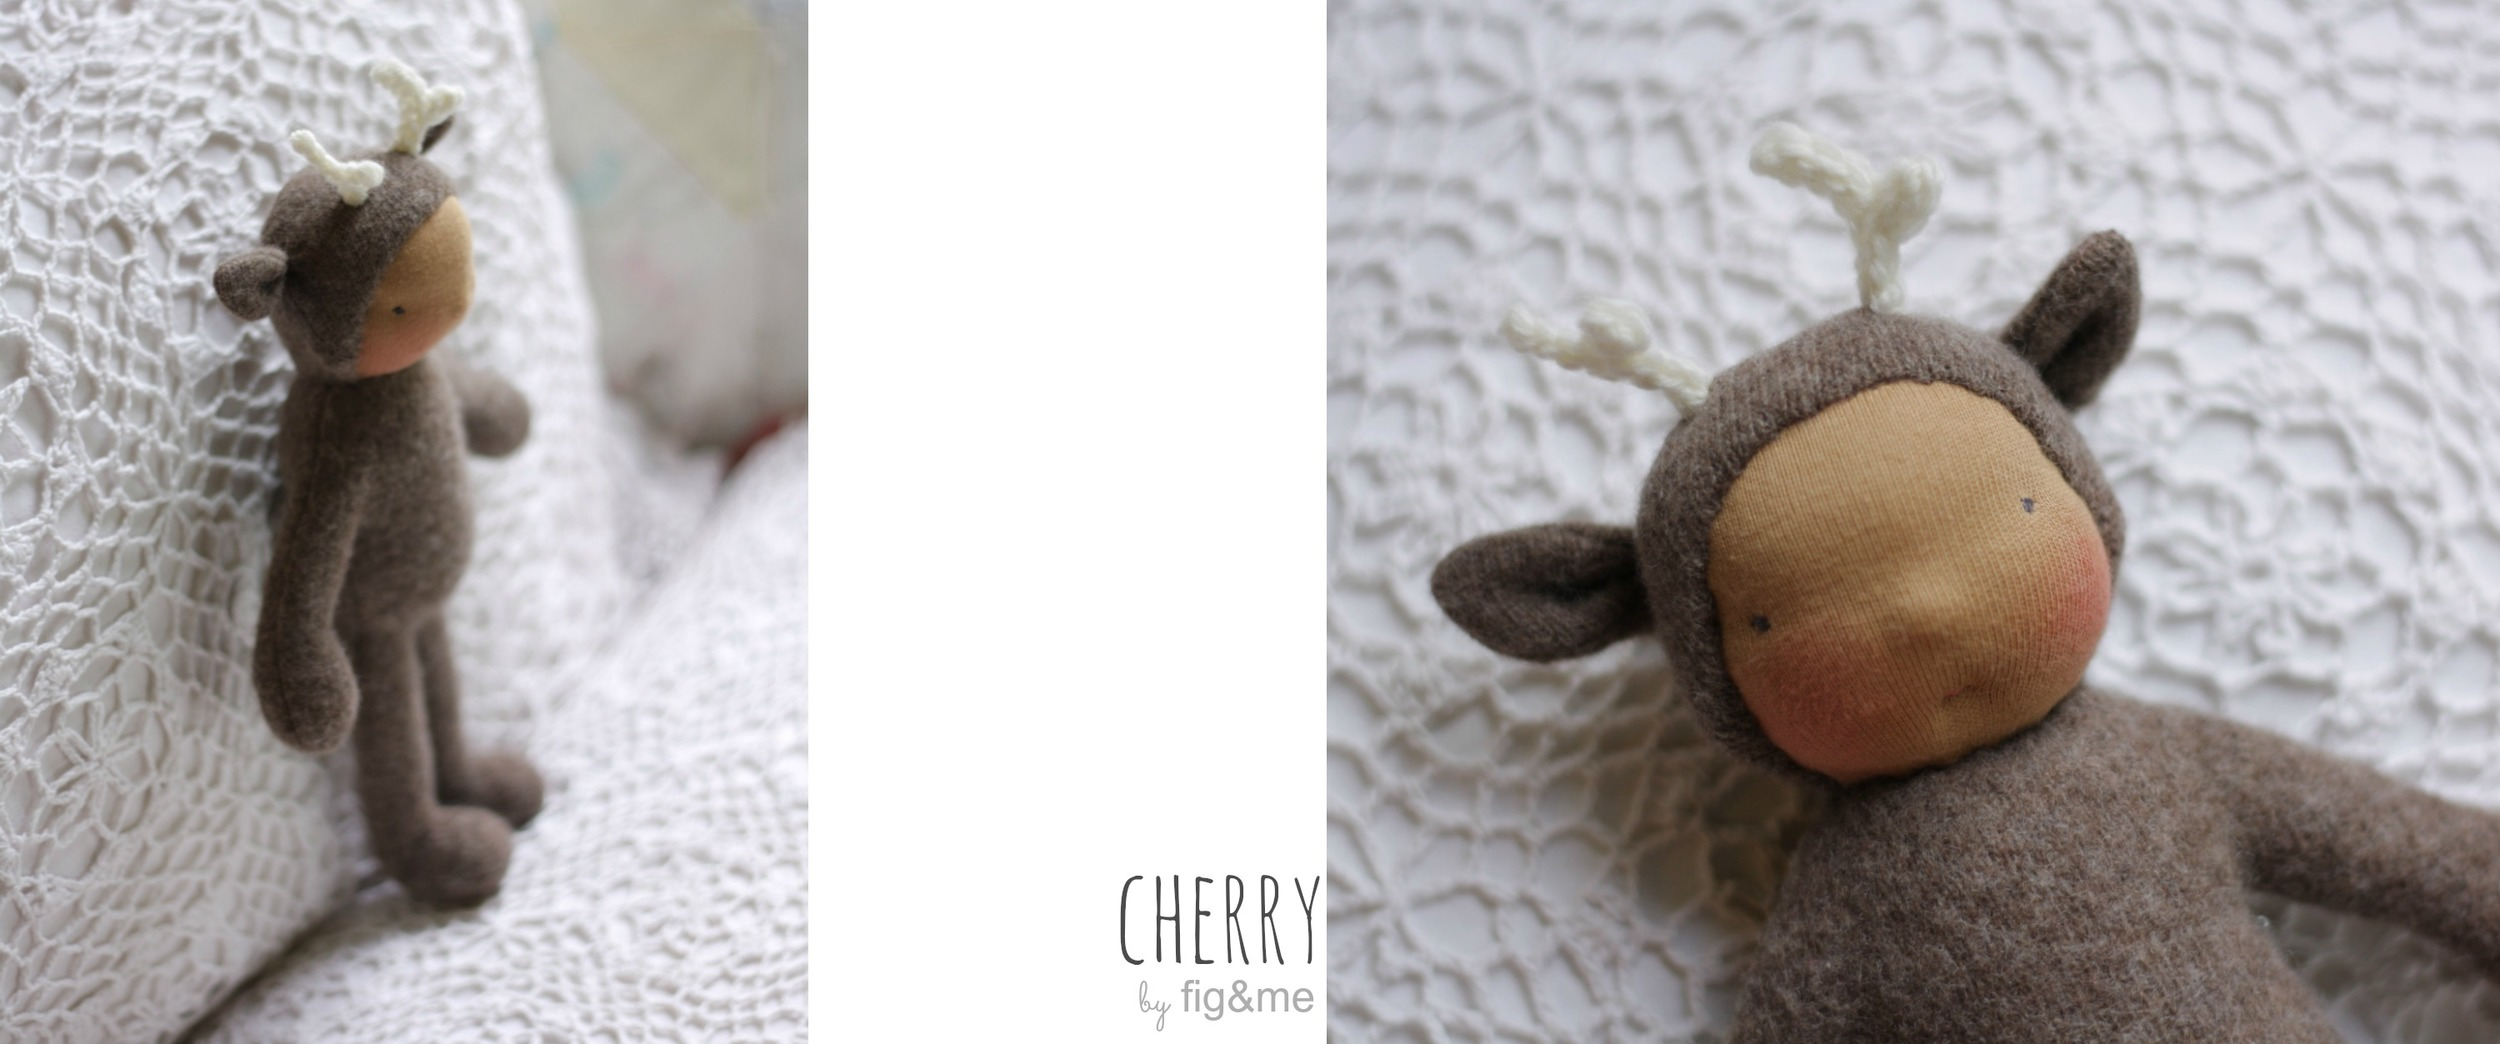 Cherry by Fig and Me.